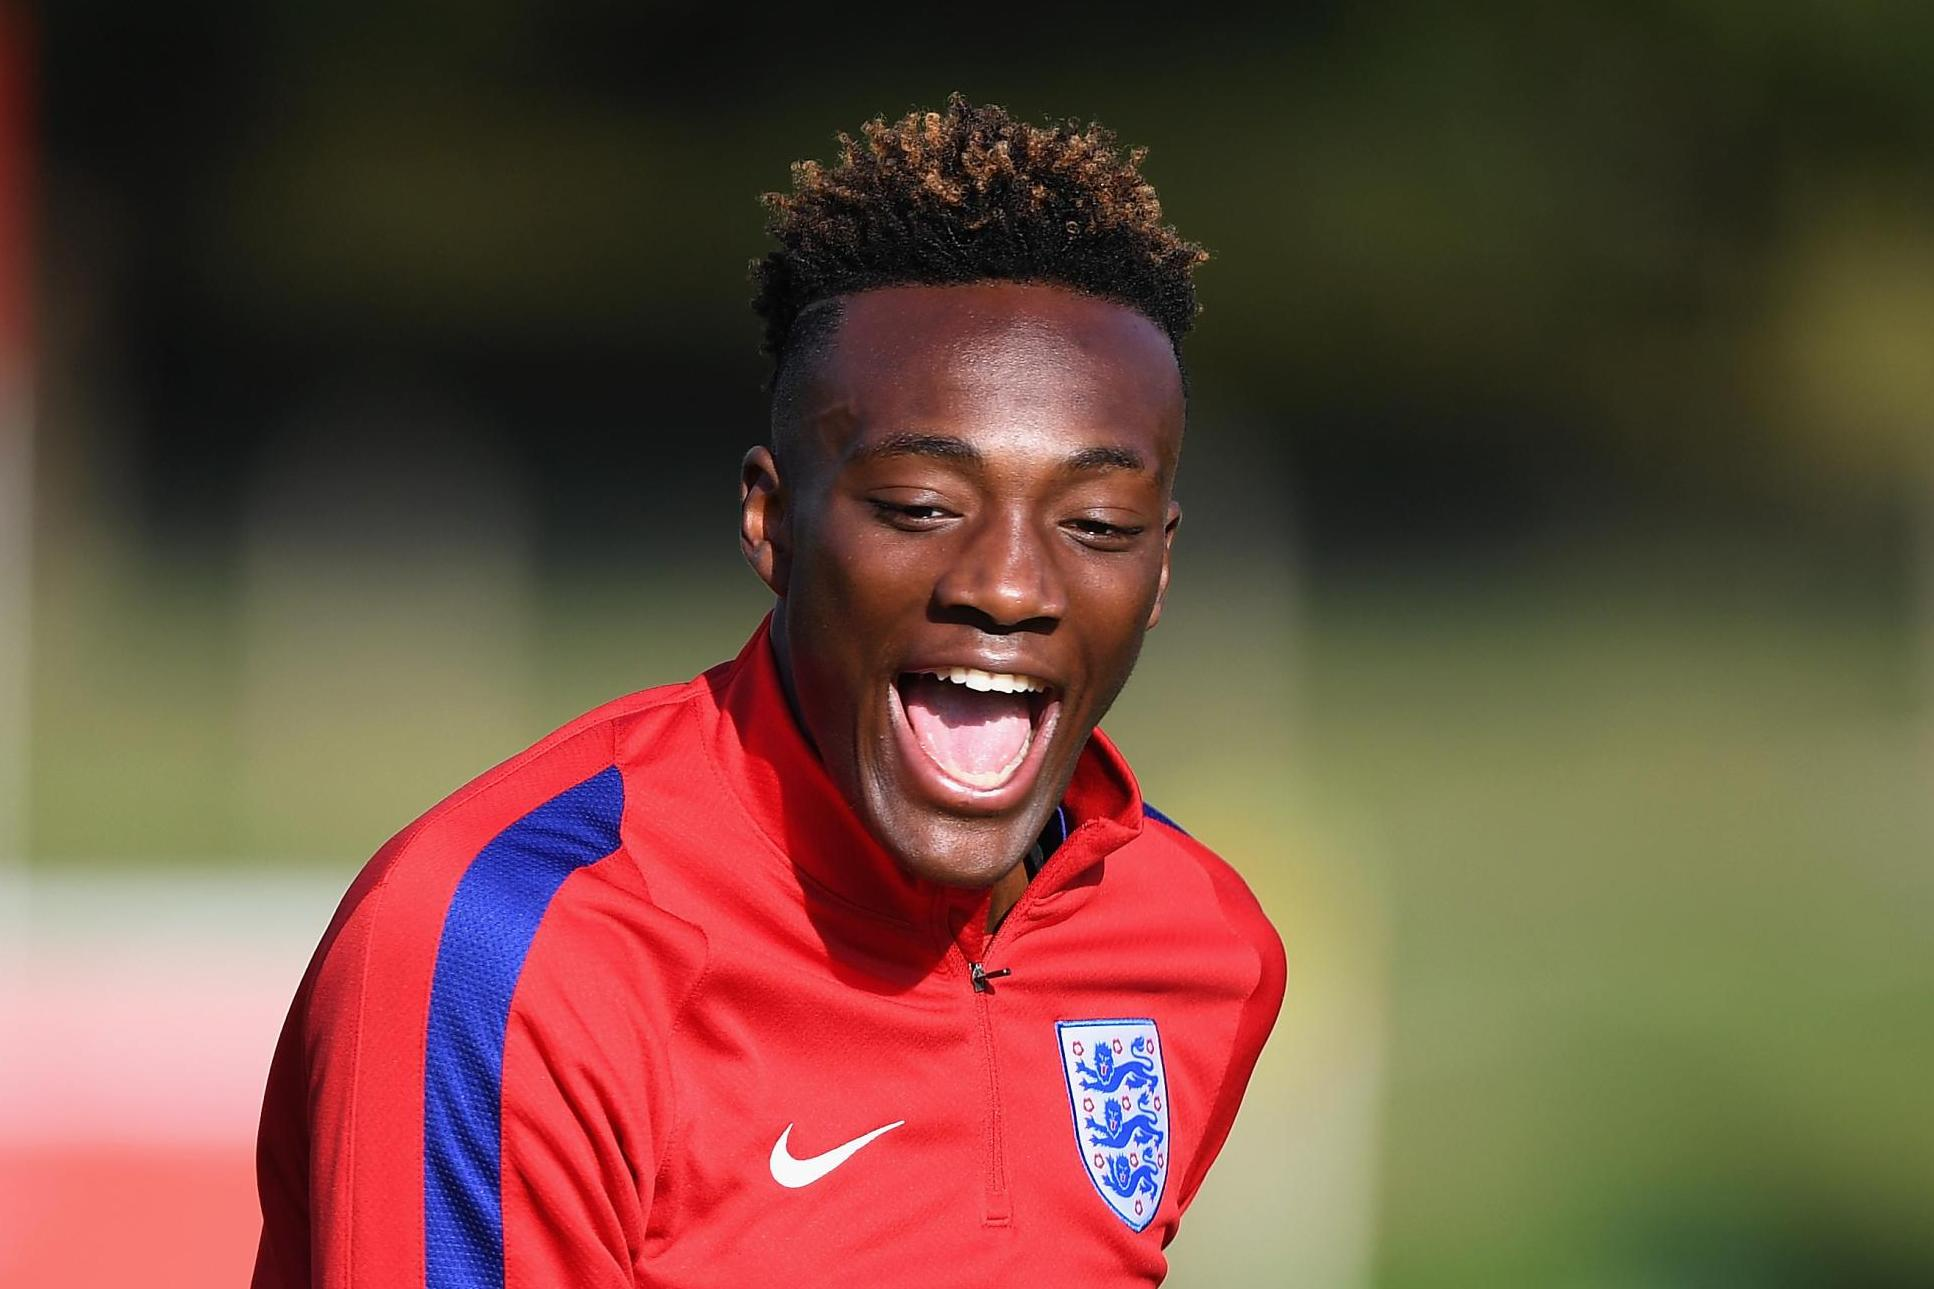 Tammy Abraham denies opting for Nigeria, commits to England